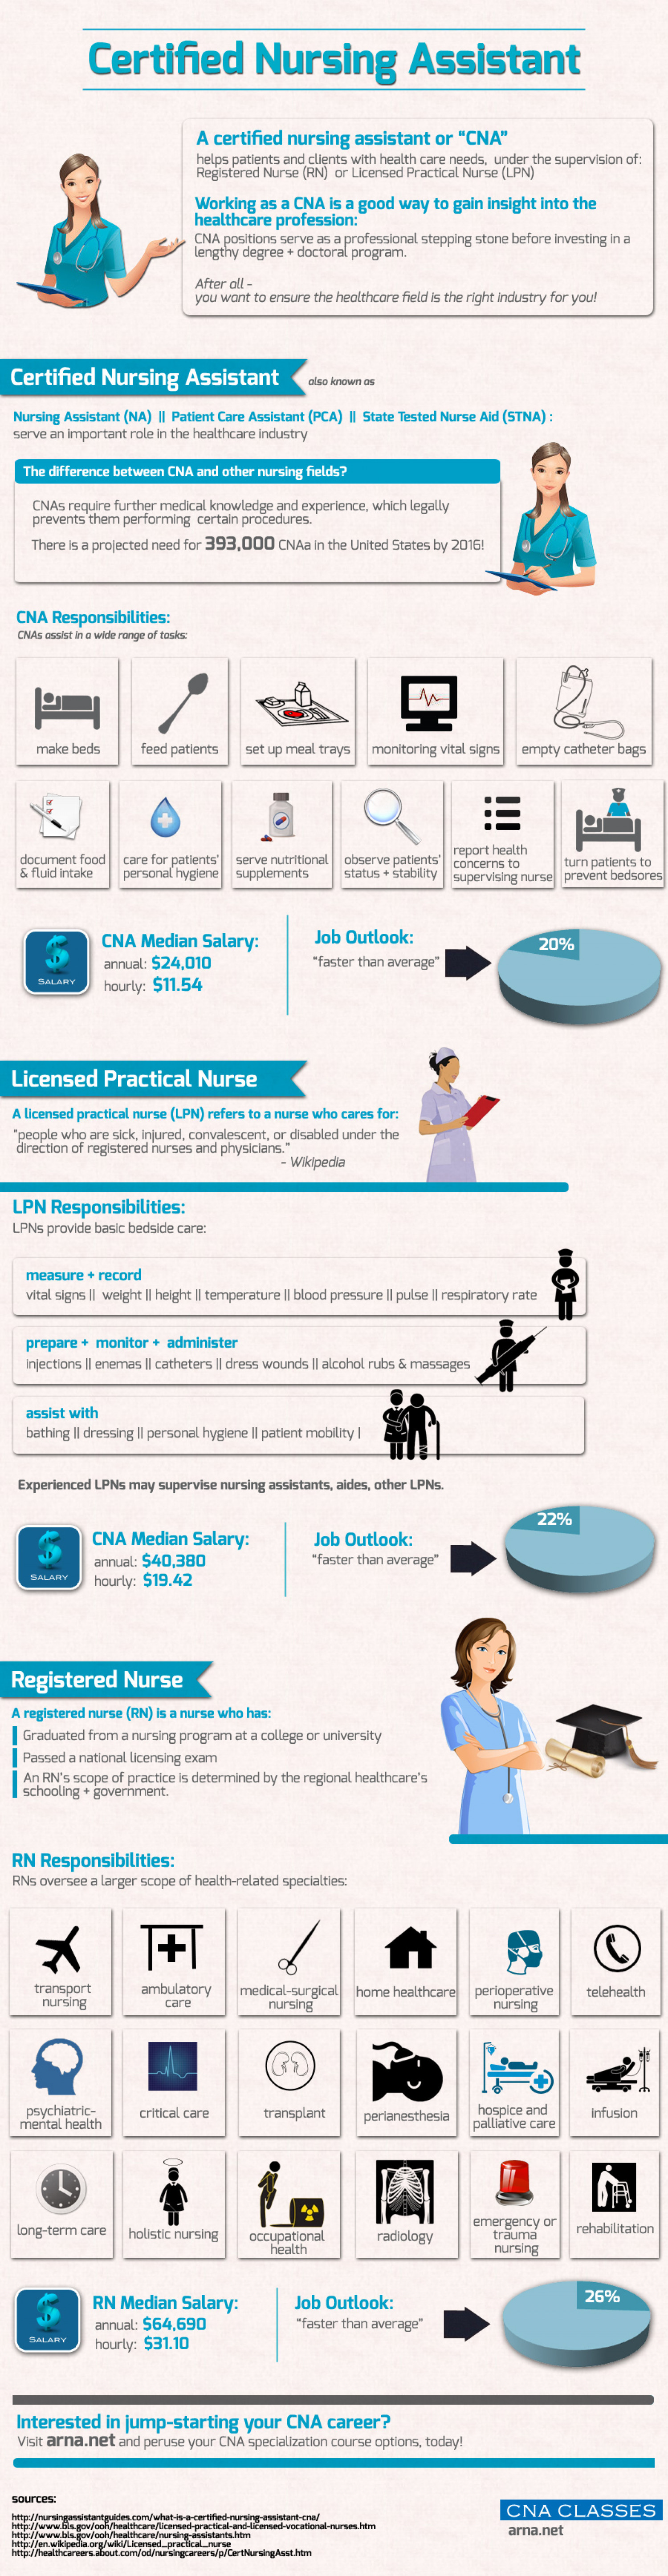 Certified Nursing Assistant Infographic